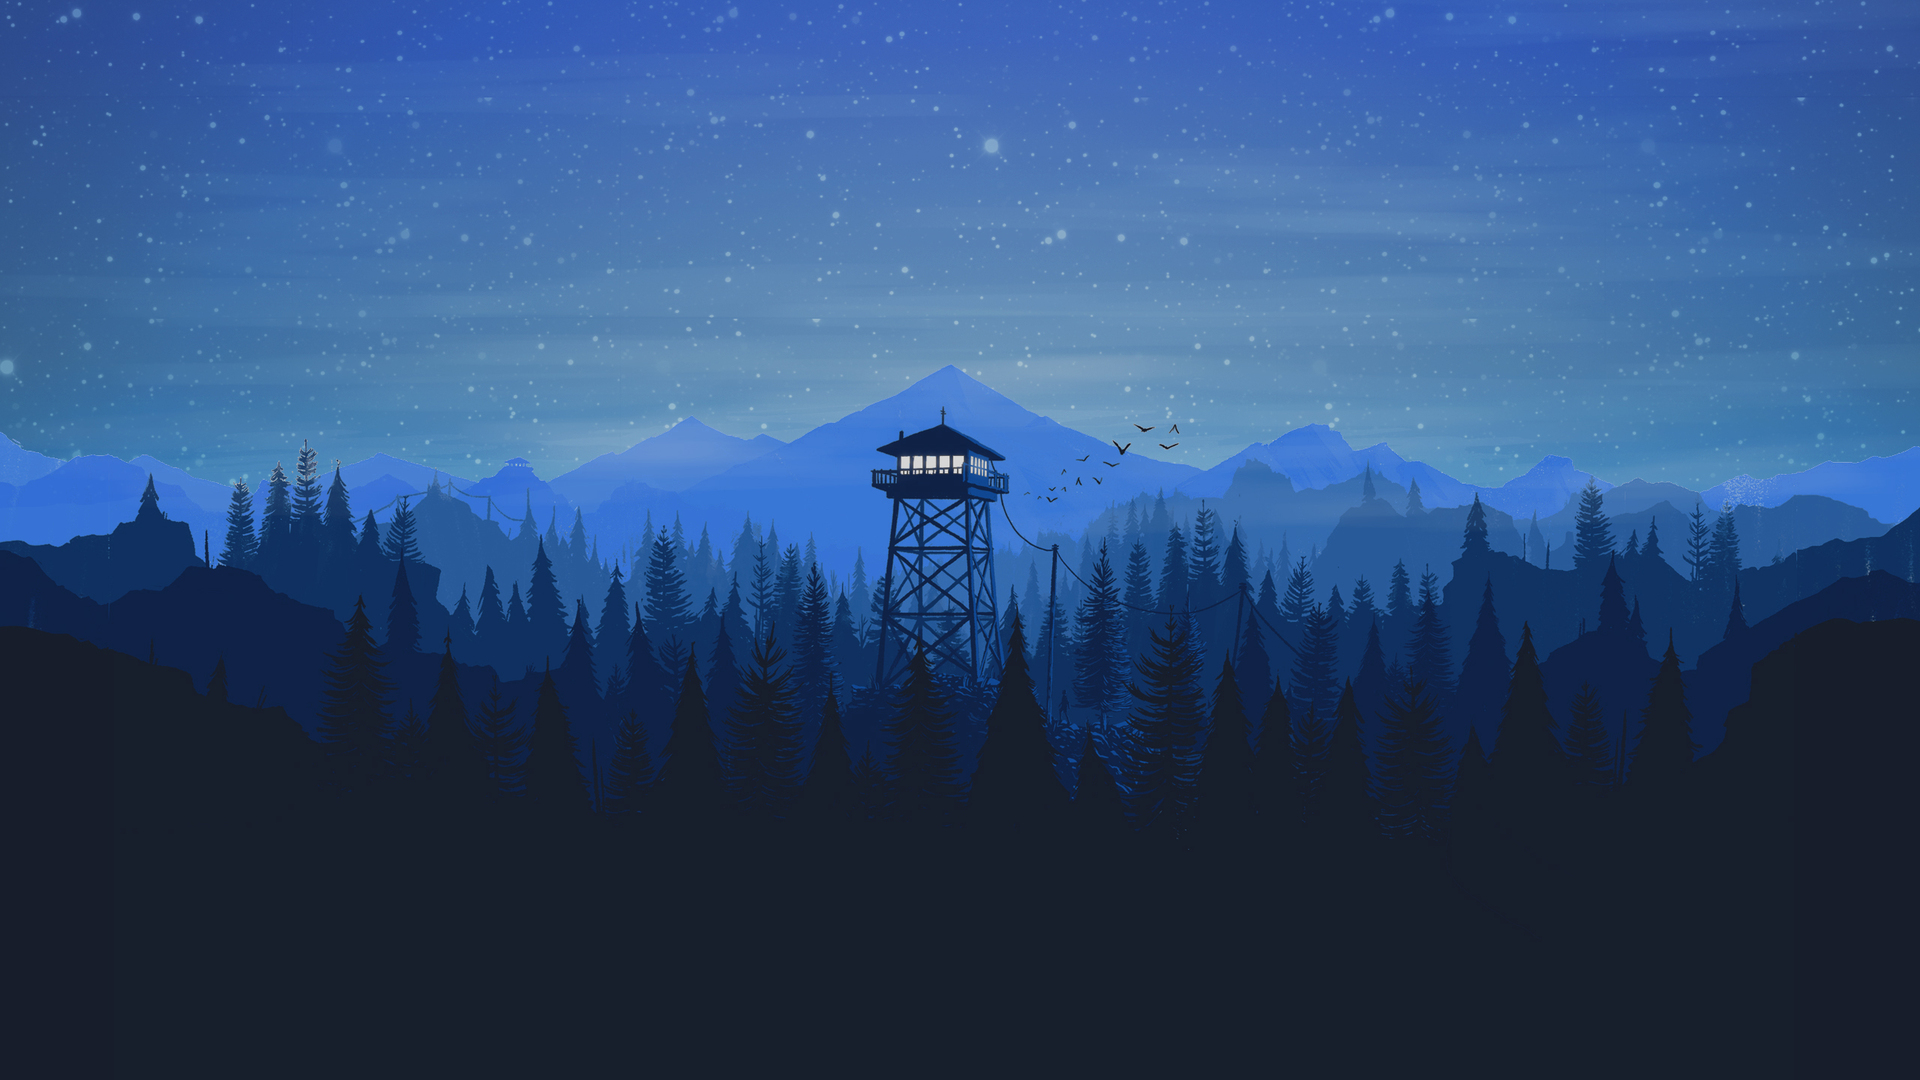 1920x1080 Firewatch Laptop Full Hd 1080p Hd 4k Wallpapers Images